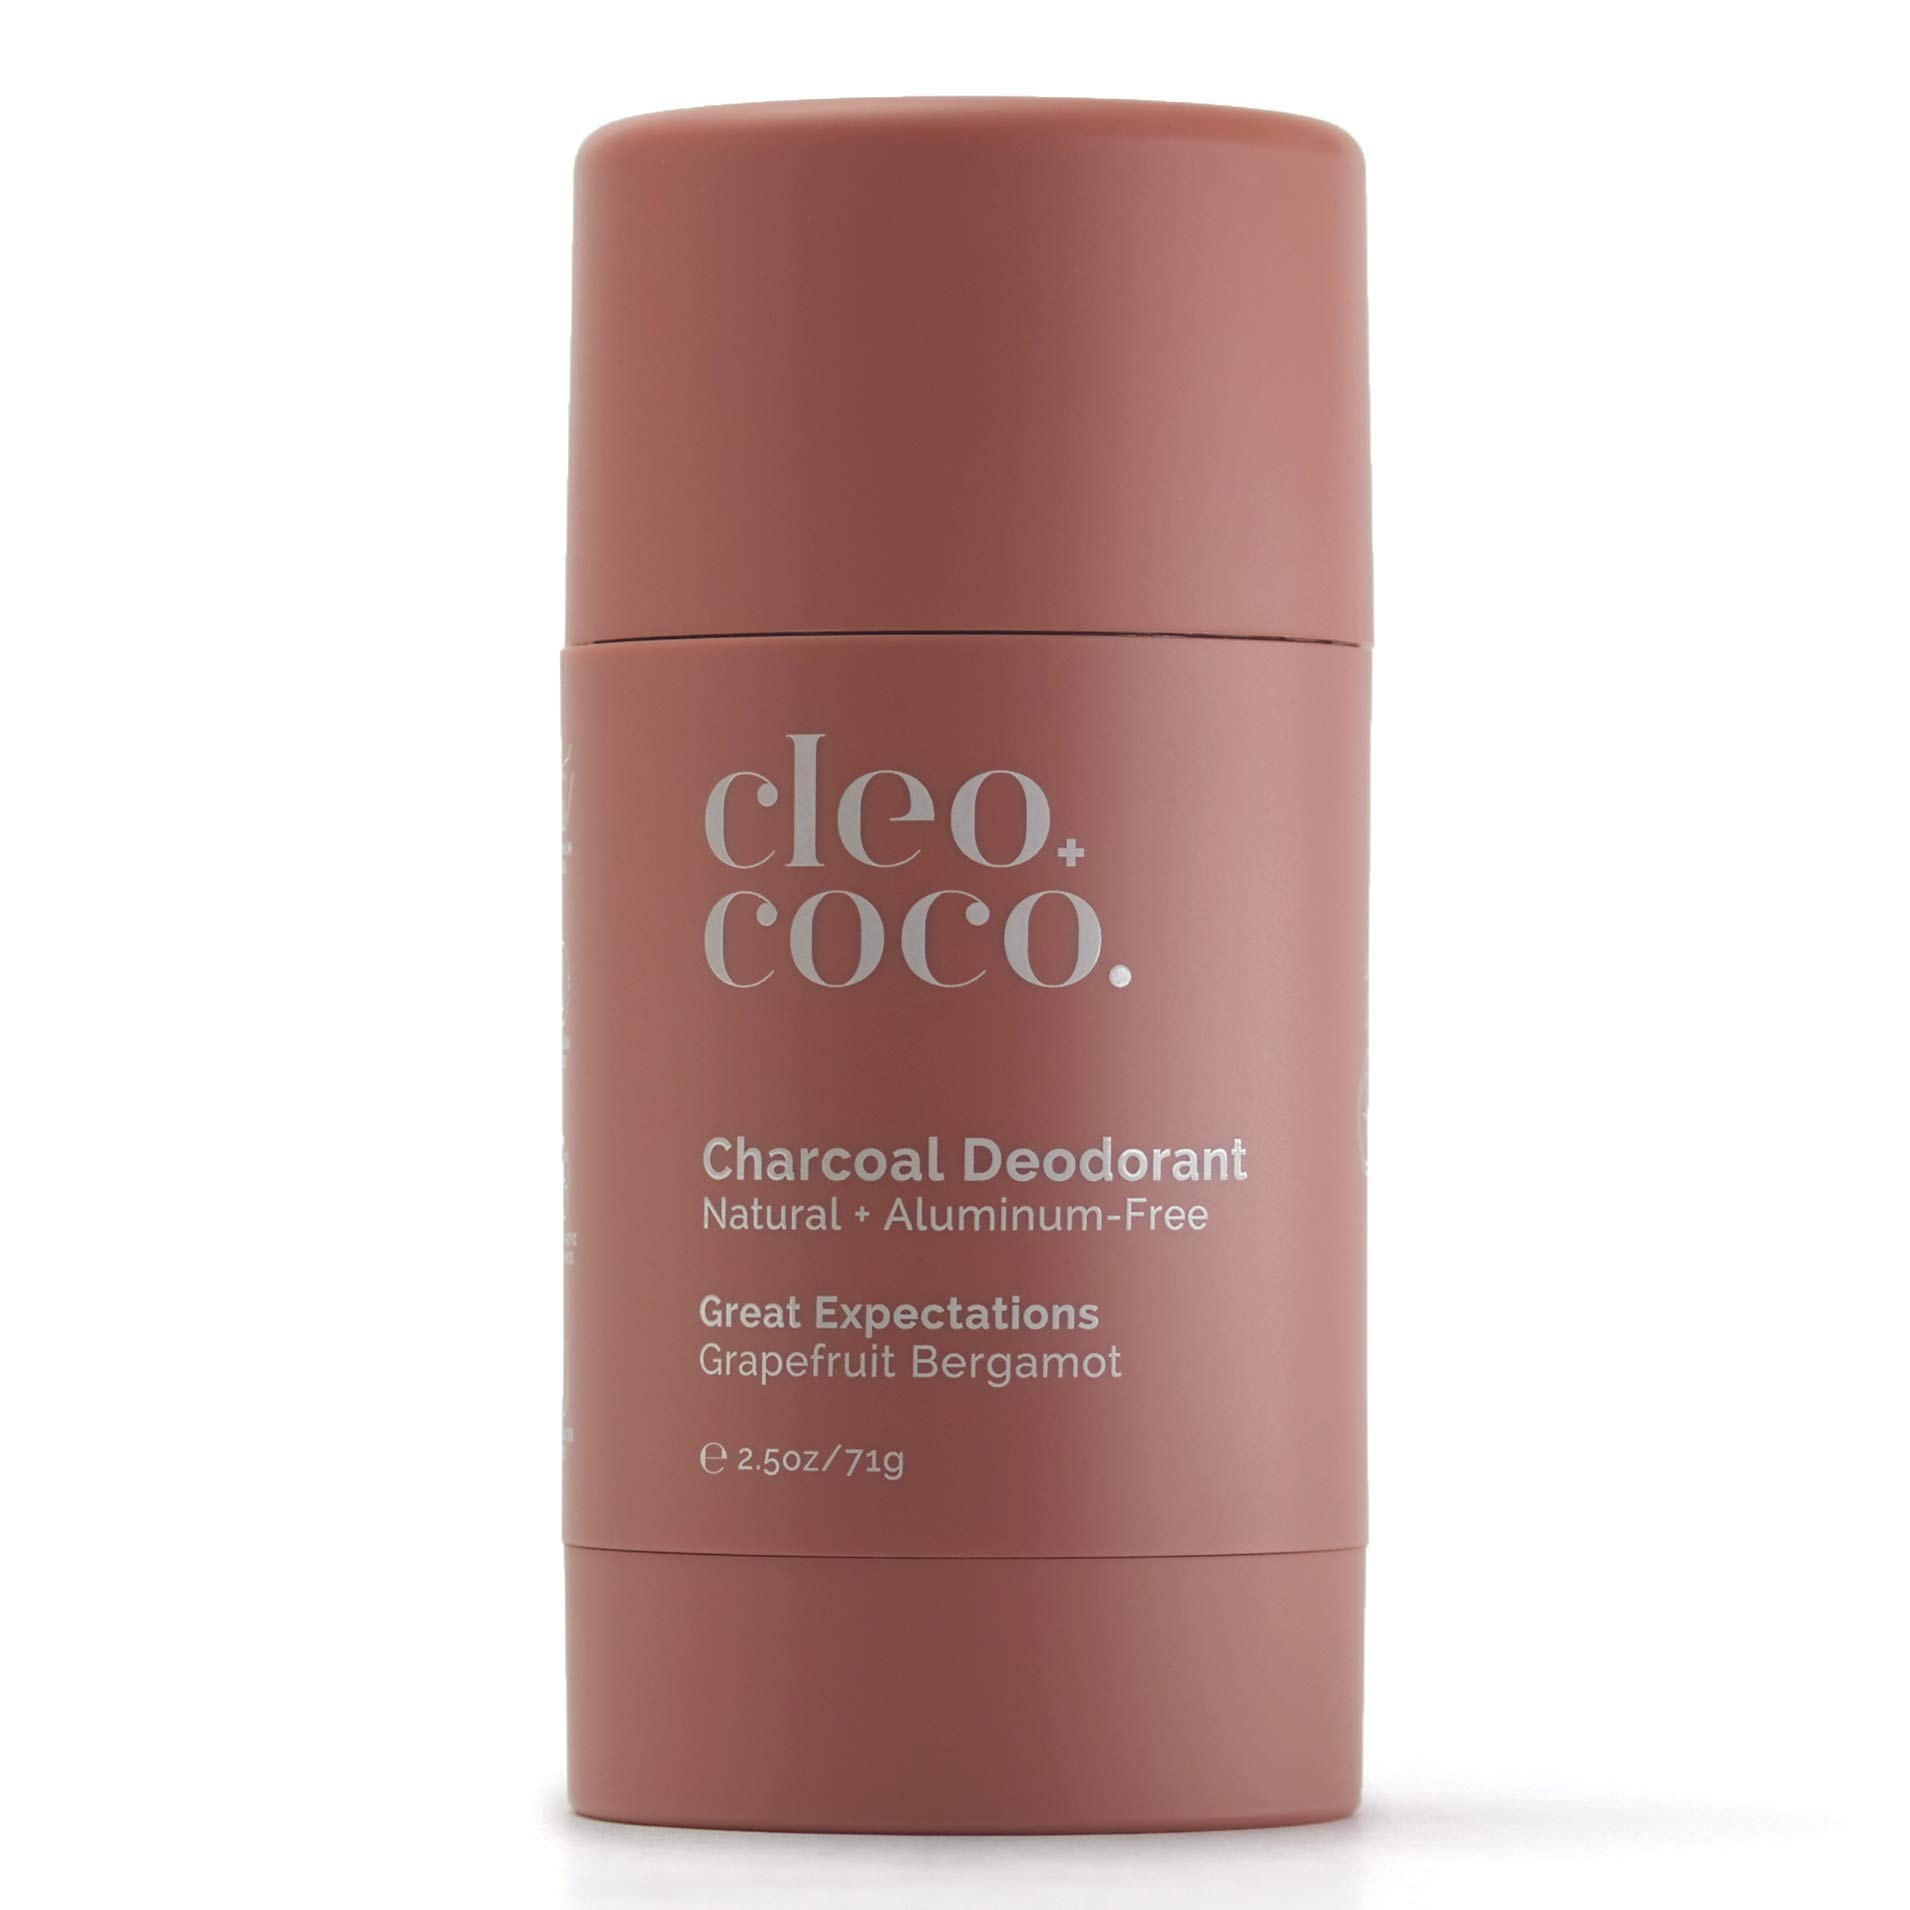 Cleo+Coco Natural Deodorant for Women, Aluminum Free made with Organic Coconut Oil, Activated Charcoal for 24-Hour Odor Protection, All-Day Performance, Made in the USA - Grapefruit Bergamot 2.5oz